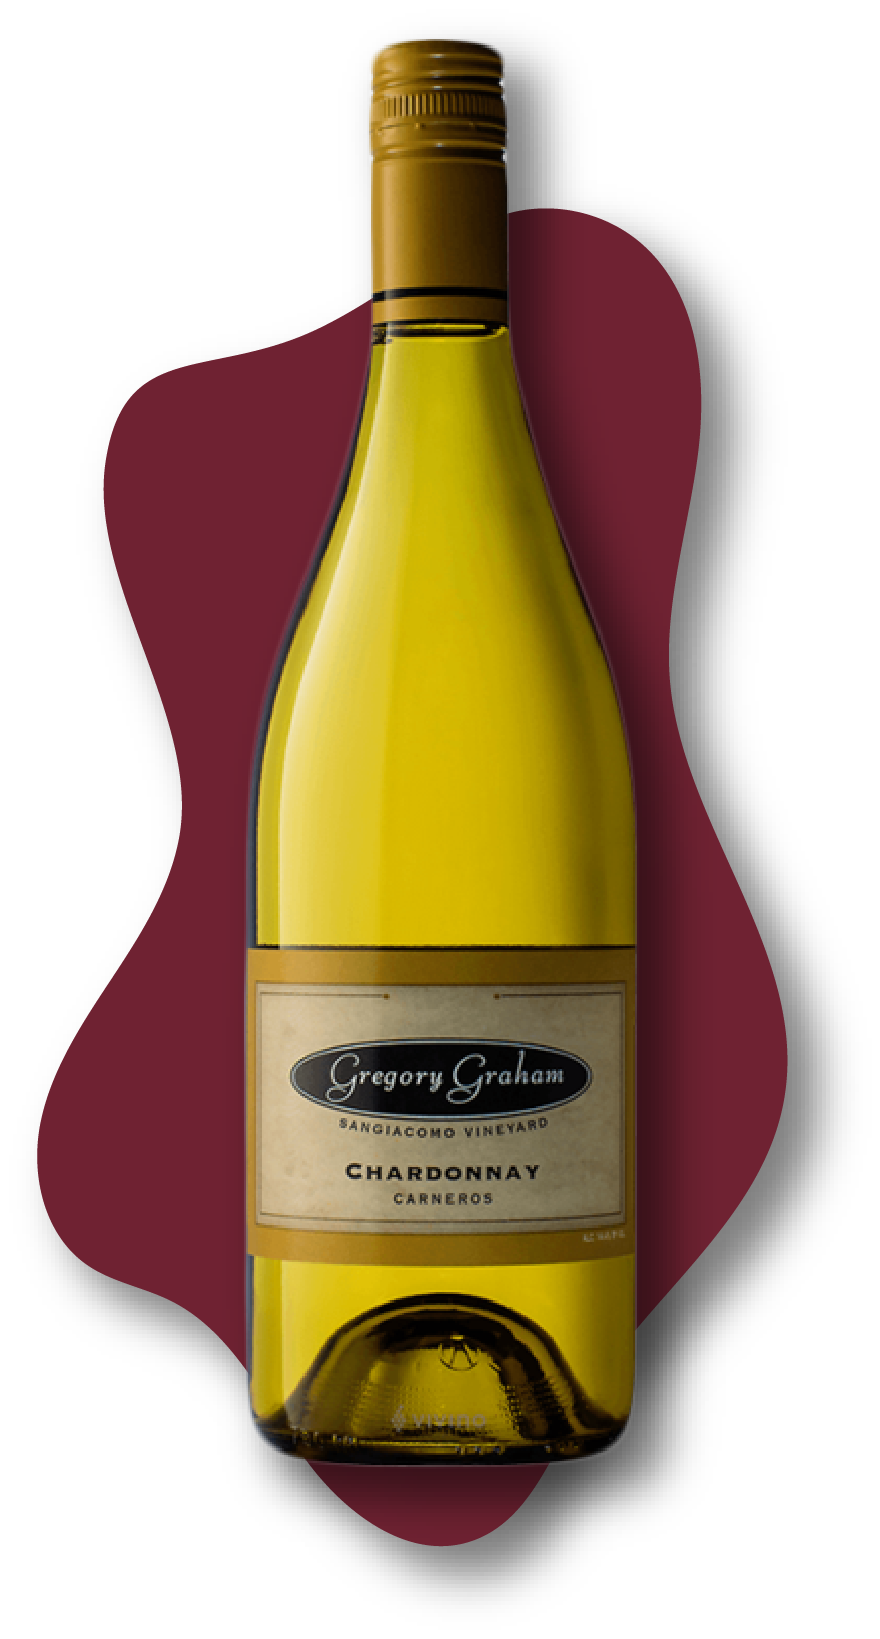 Gregory Graham Sangiacomo Vineyard, Chardonnay, Carneros, 2019 Online Wine Class Image at learnaboutwine.com